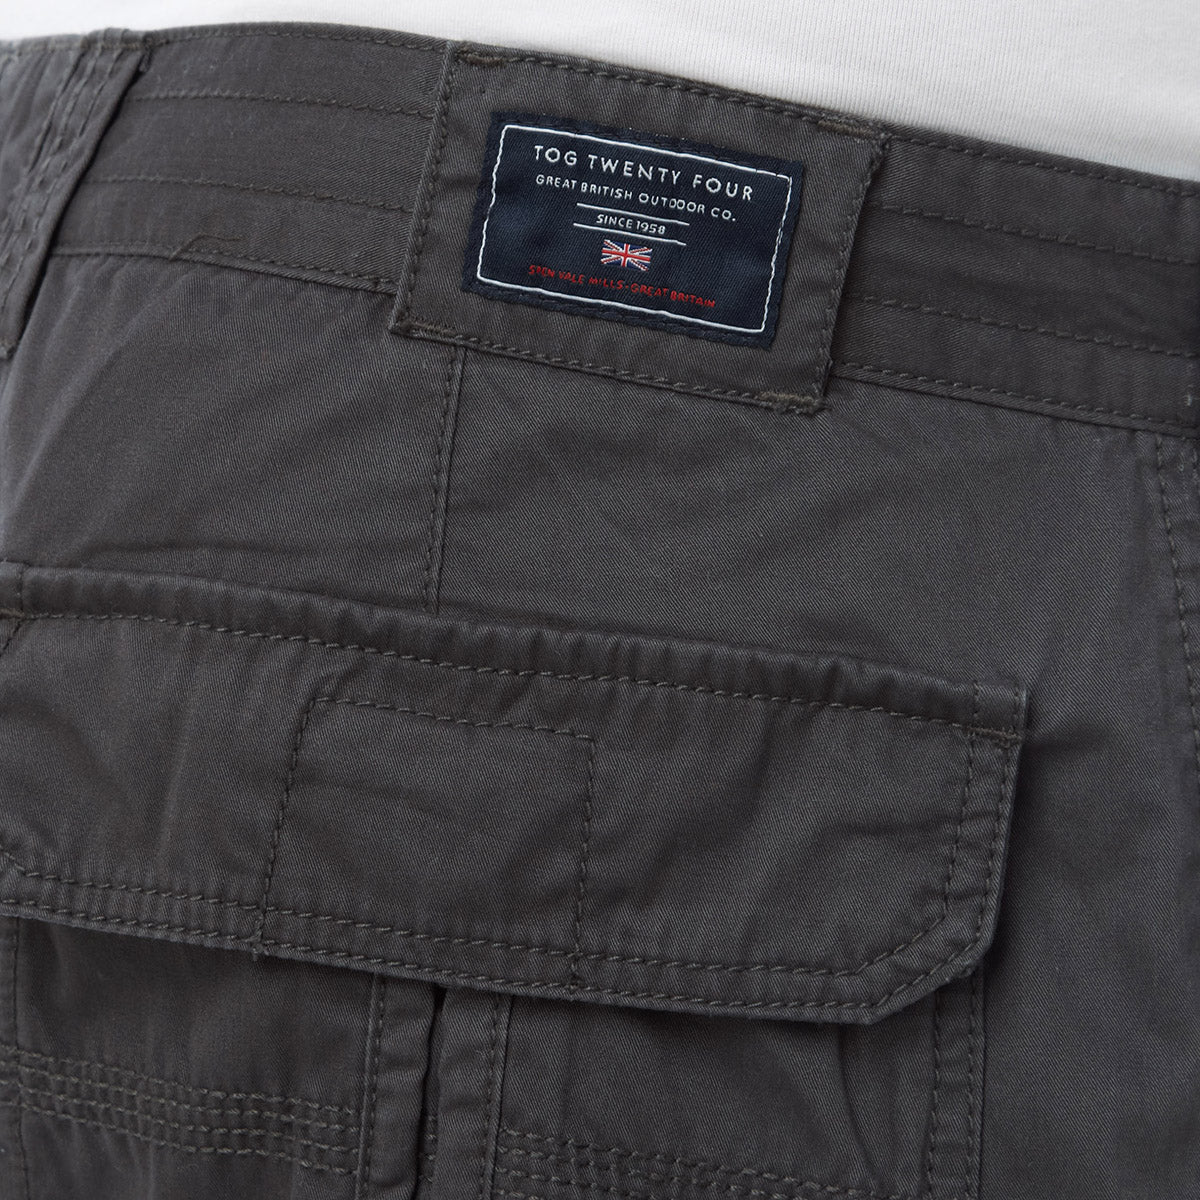 Desert Mens Shorts - Thunder image 4